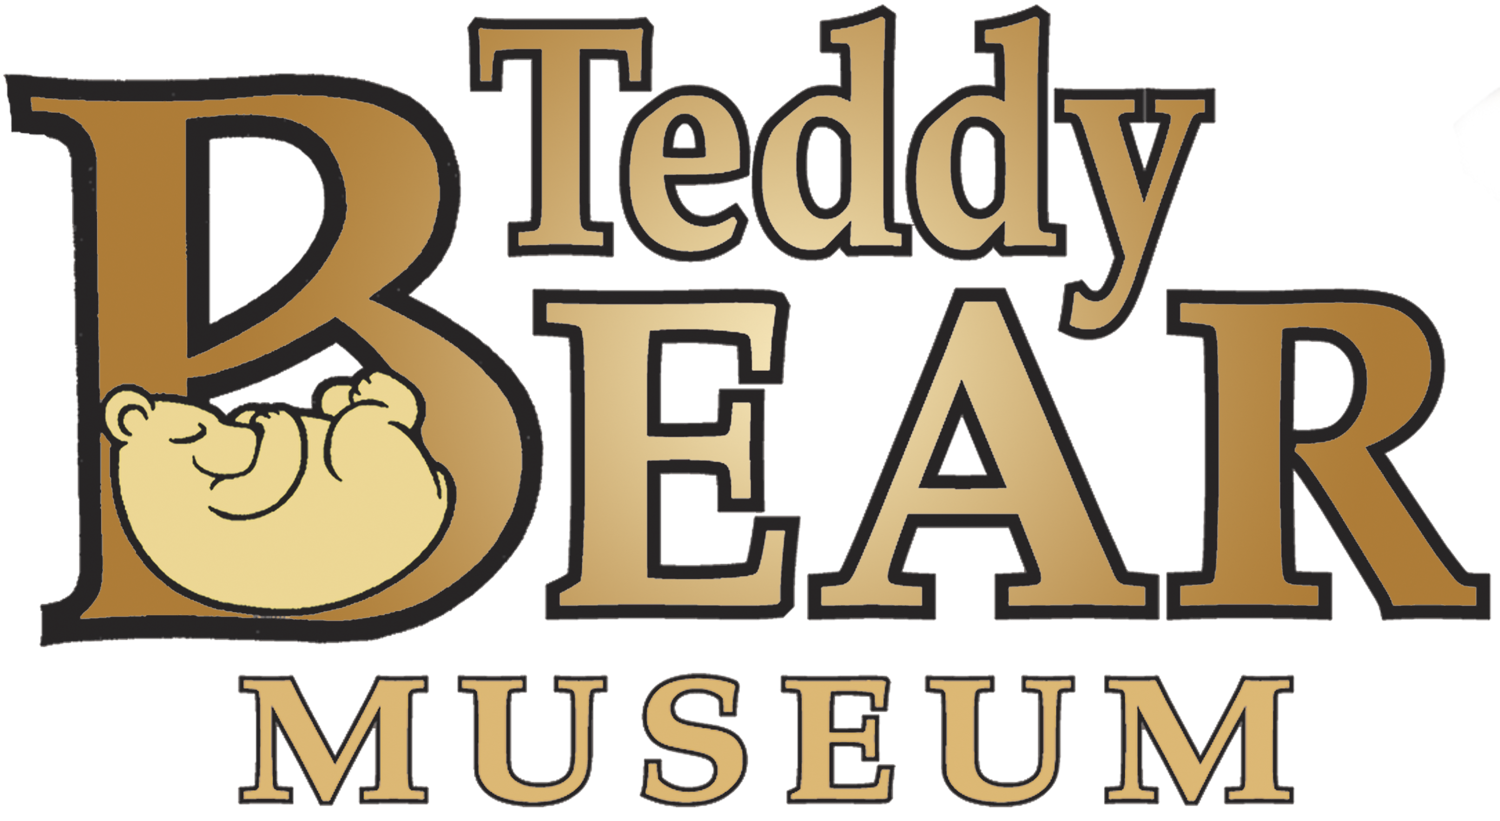 Teddy Bear House - The online shop of The Teddy Bear Museum